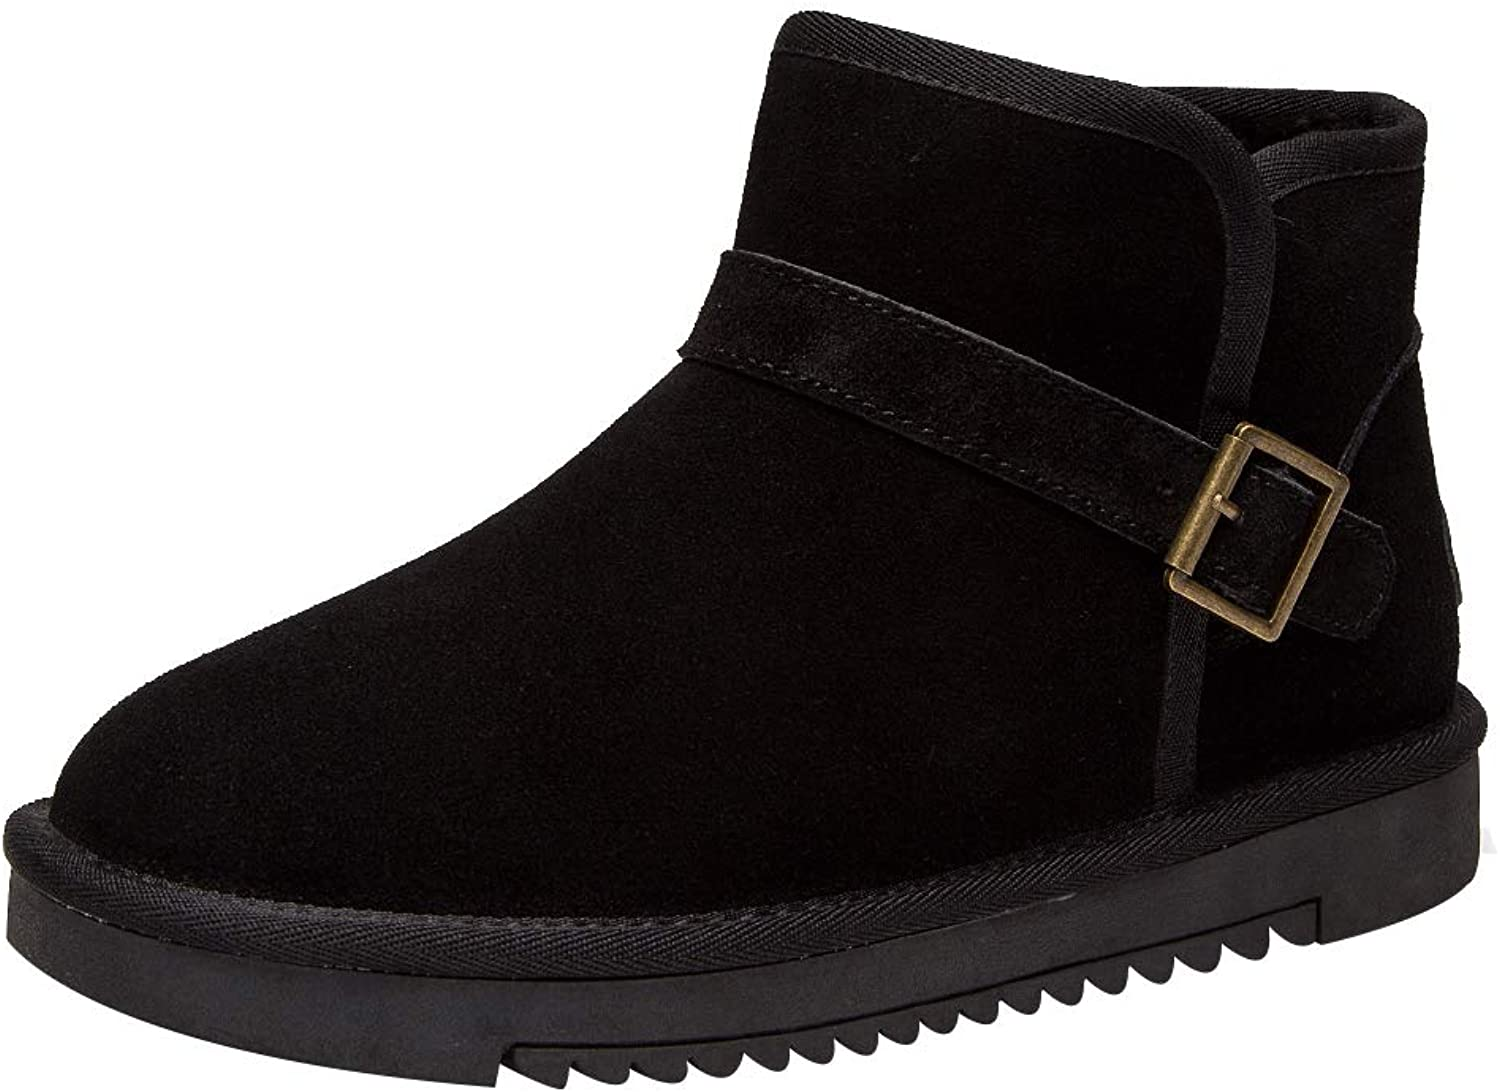 Ggudd Woman's Winter Classic Comfortable Ankle Snow Boots